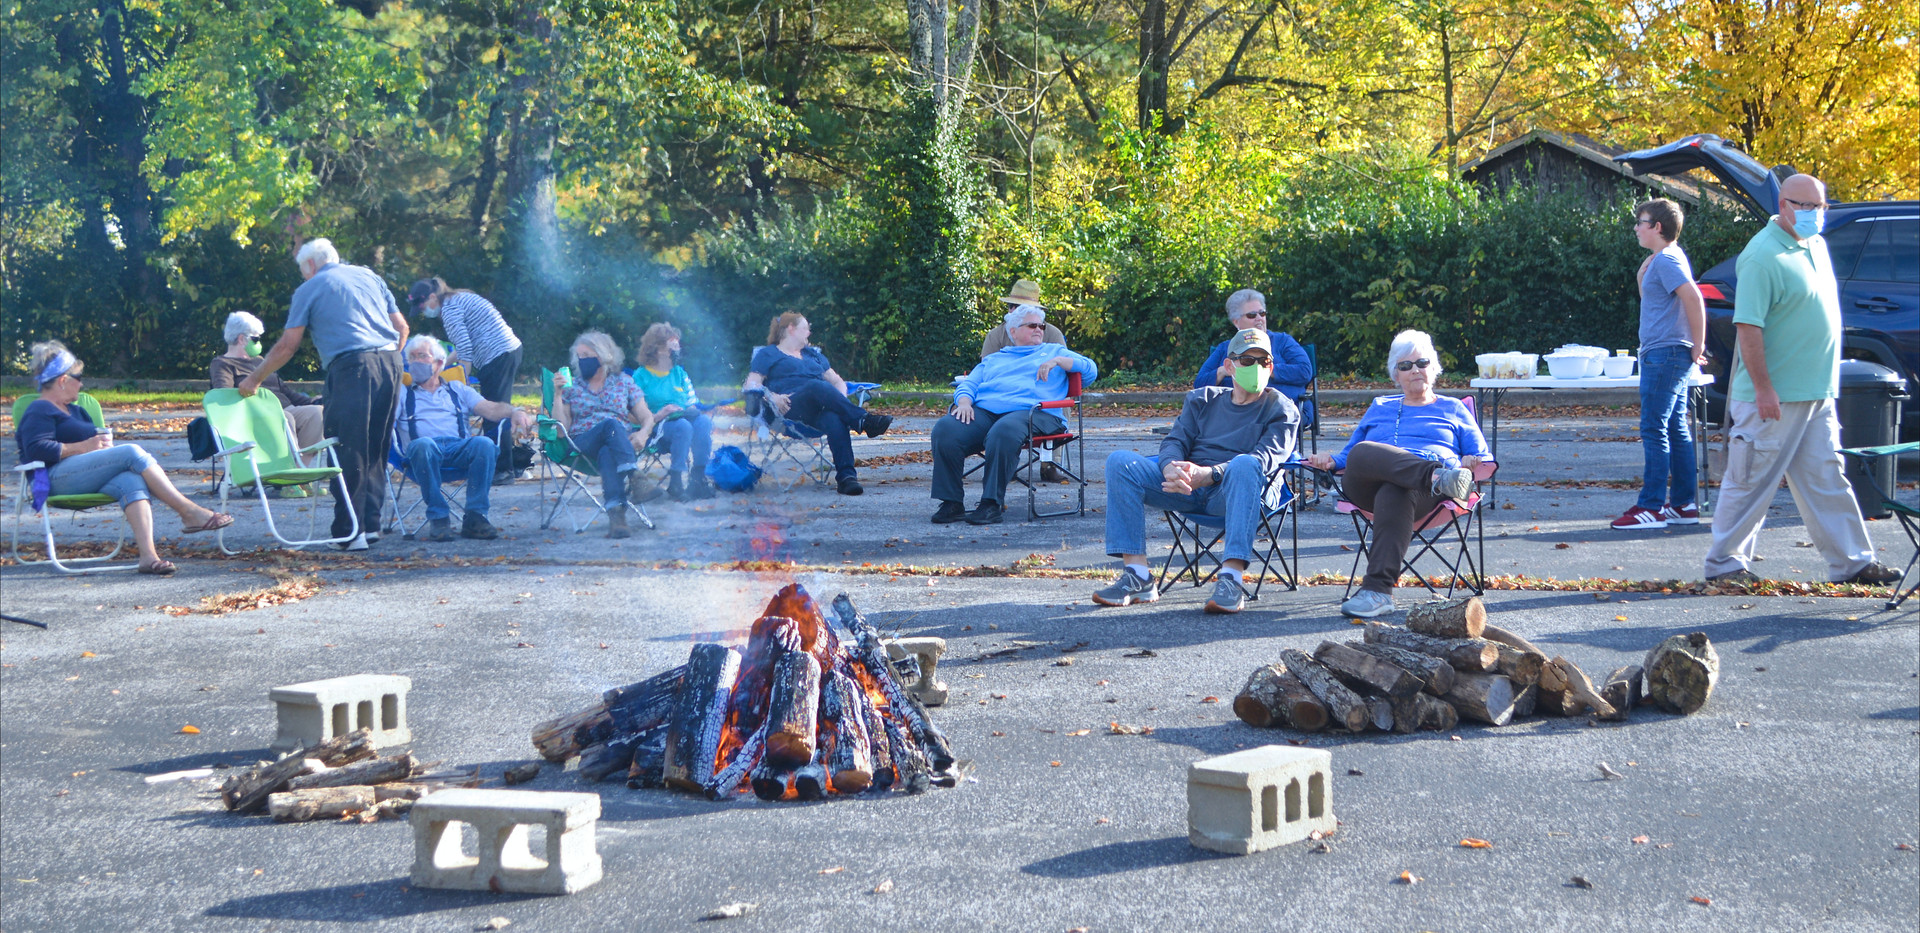 2020 (10) OCT 14 Wed Bonfire Calvary 039